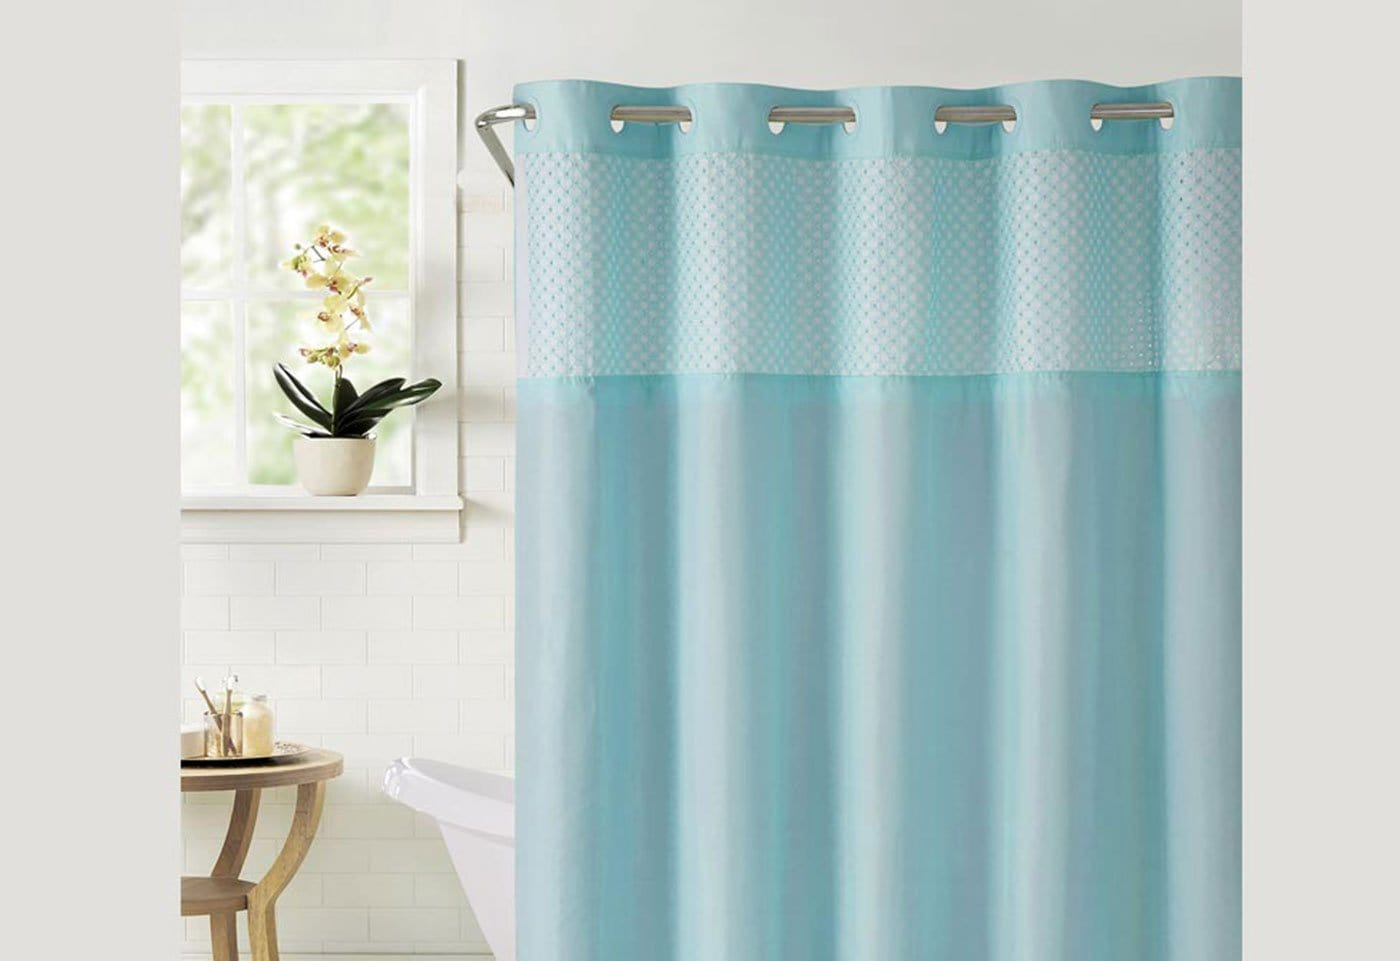 Hookless® Bahamas Shower Curtain Includes Snap On/Off Replaceable Liner - Crystal